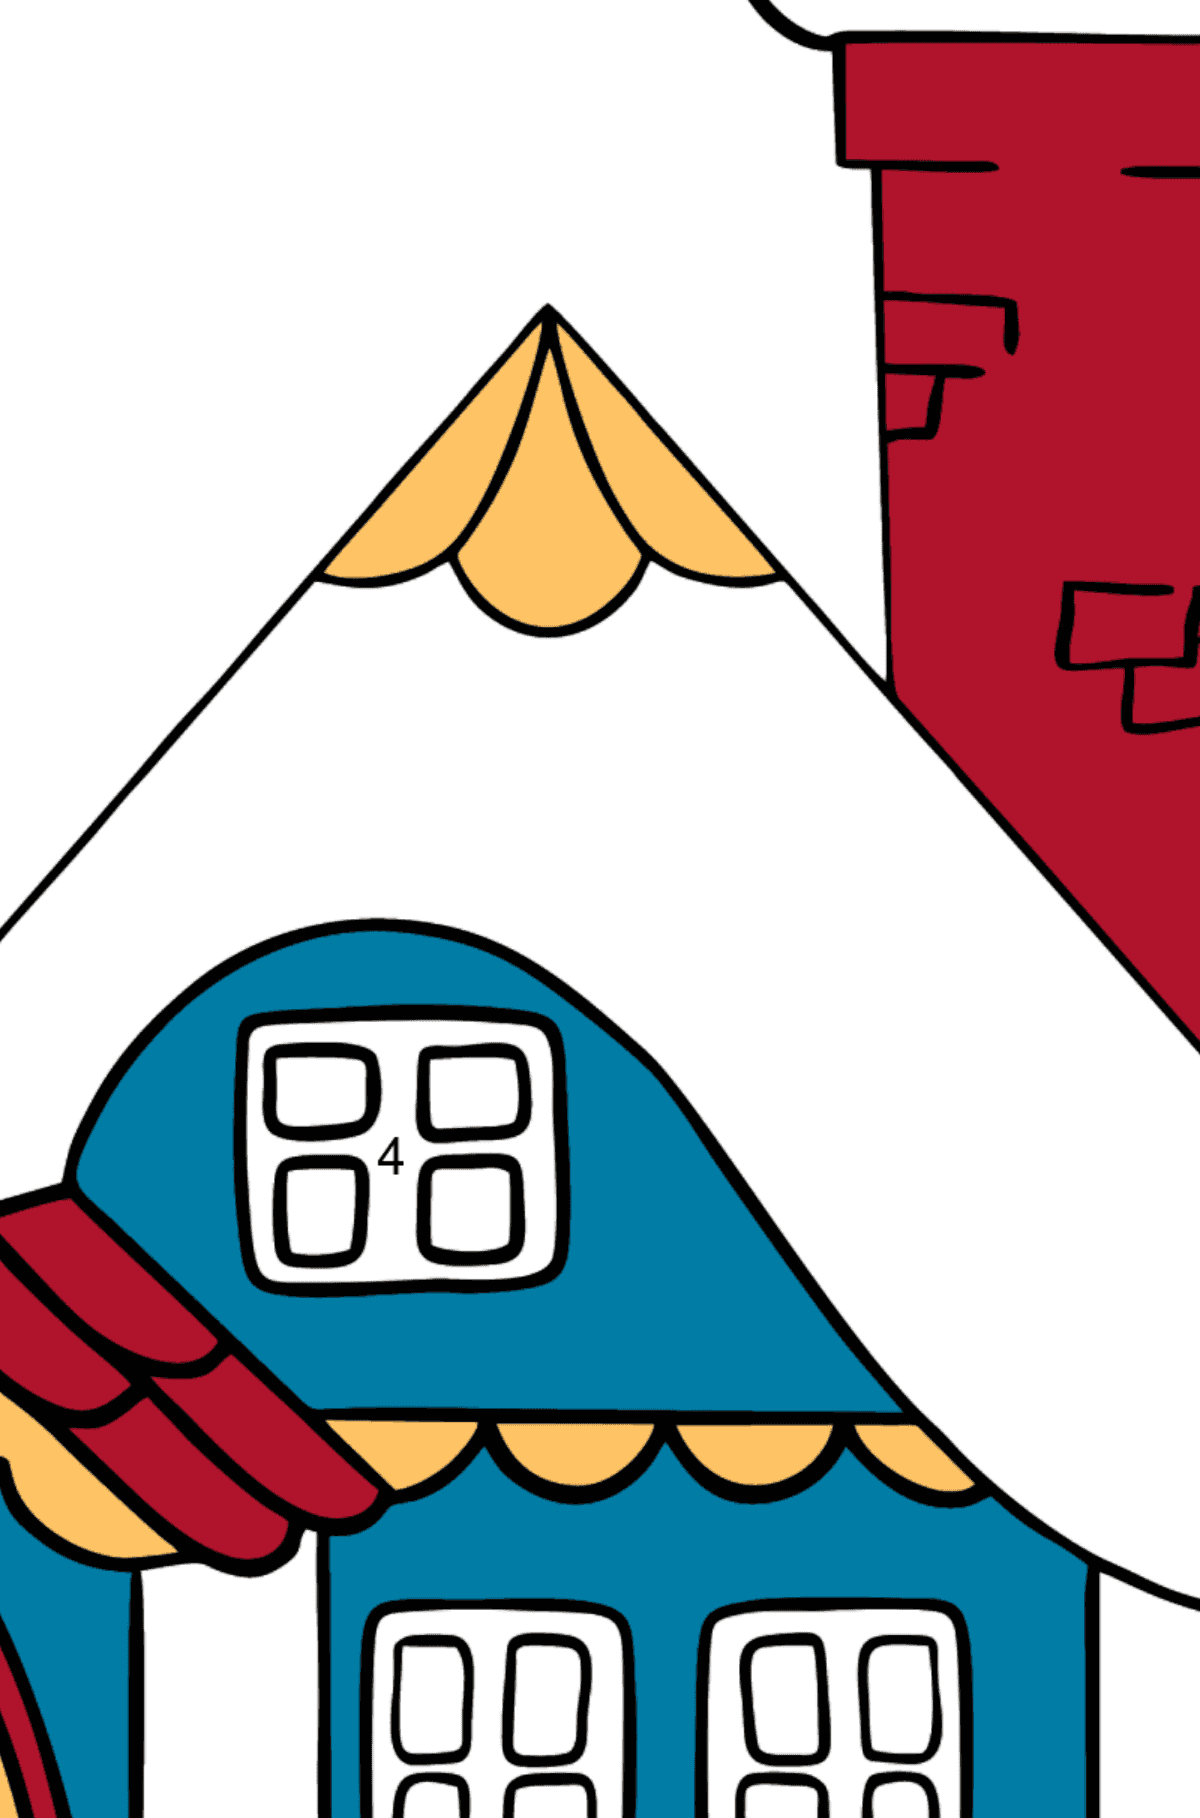 Simple Coloring Page - A Wonderful House - Coloring by Numbers for Kids